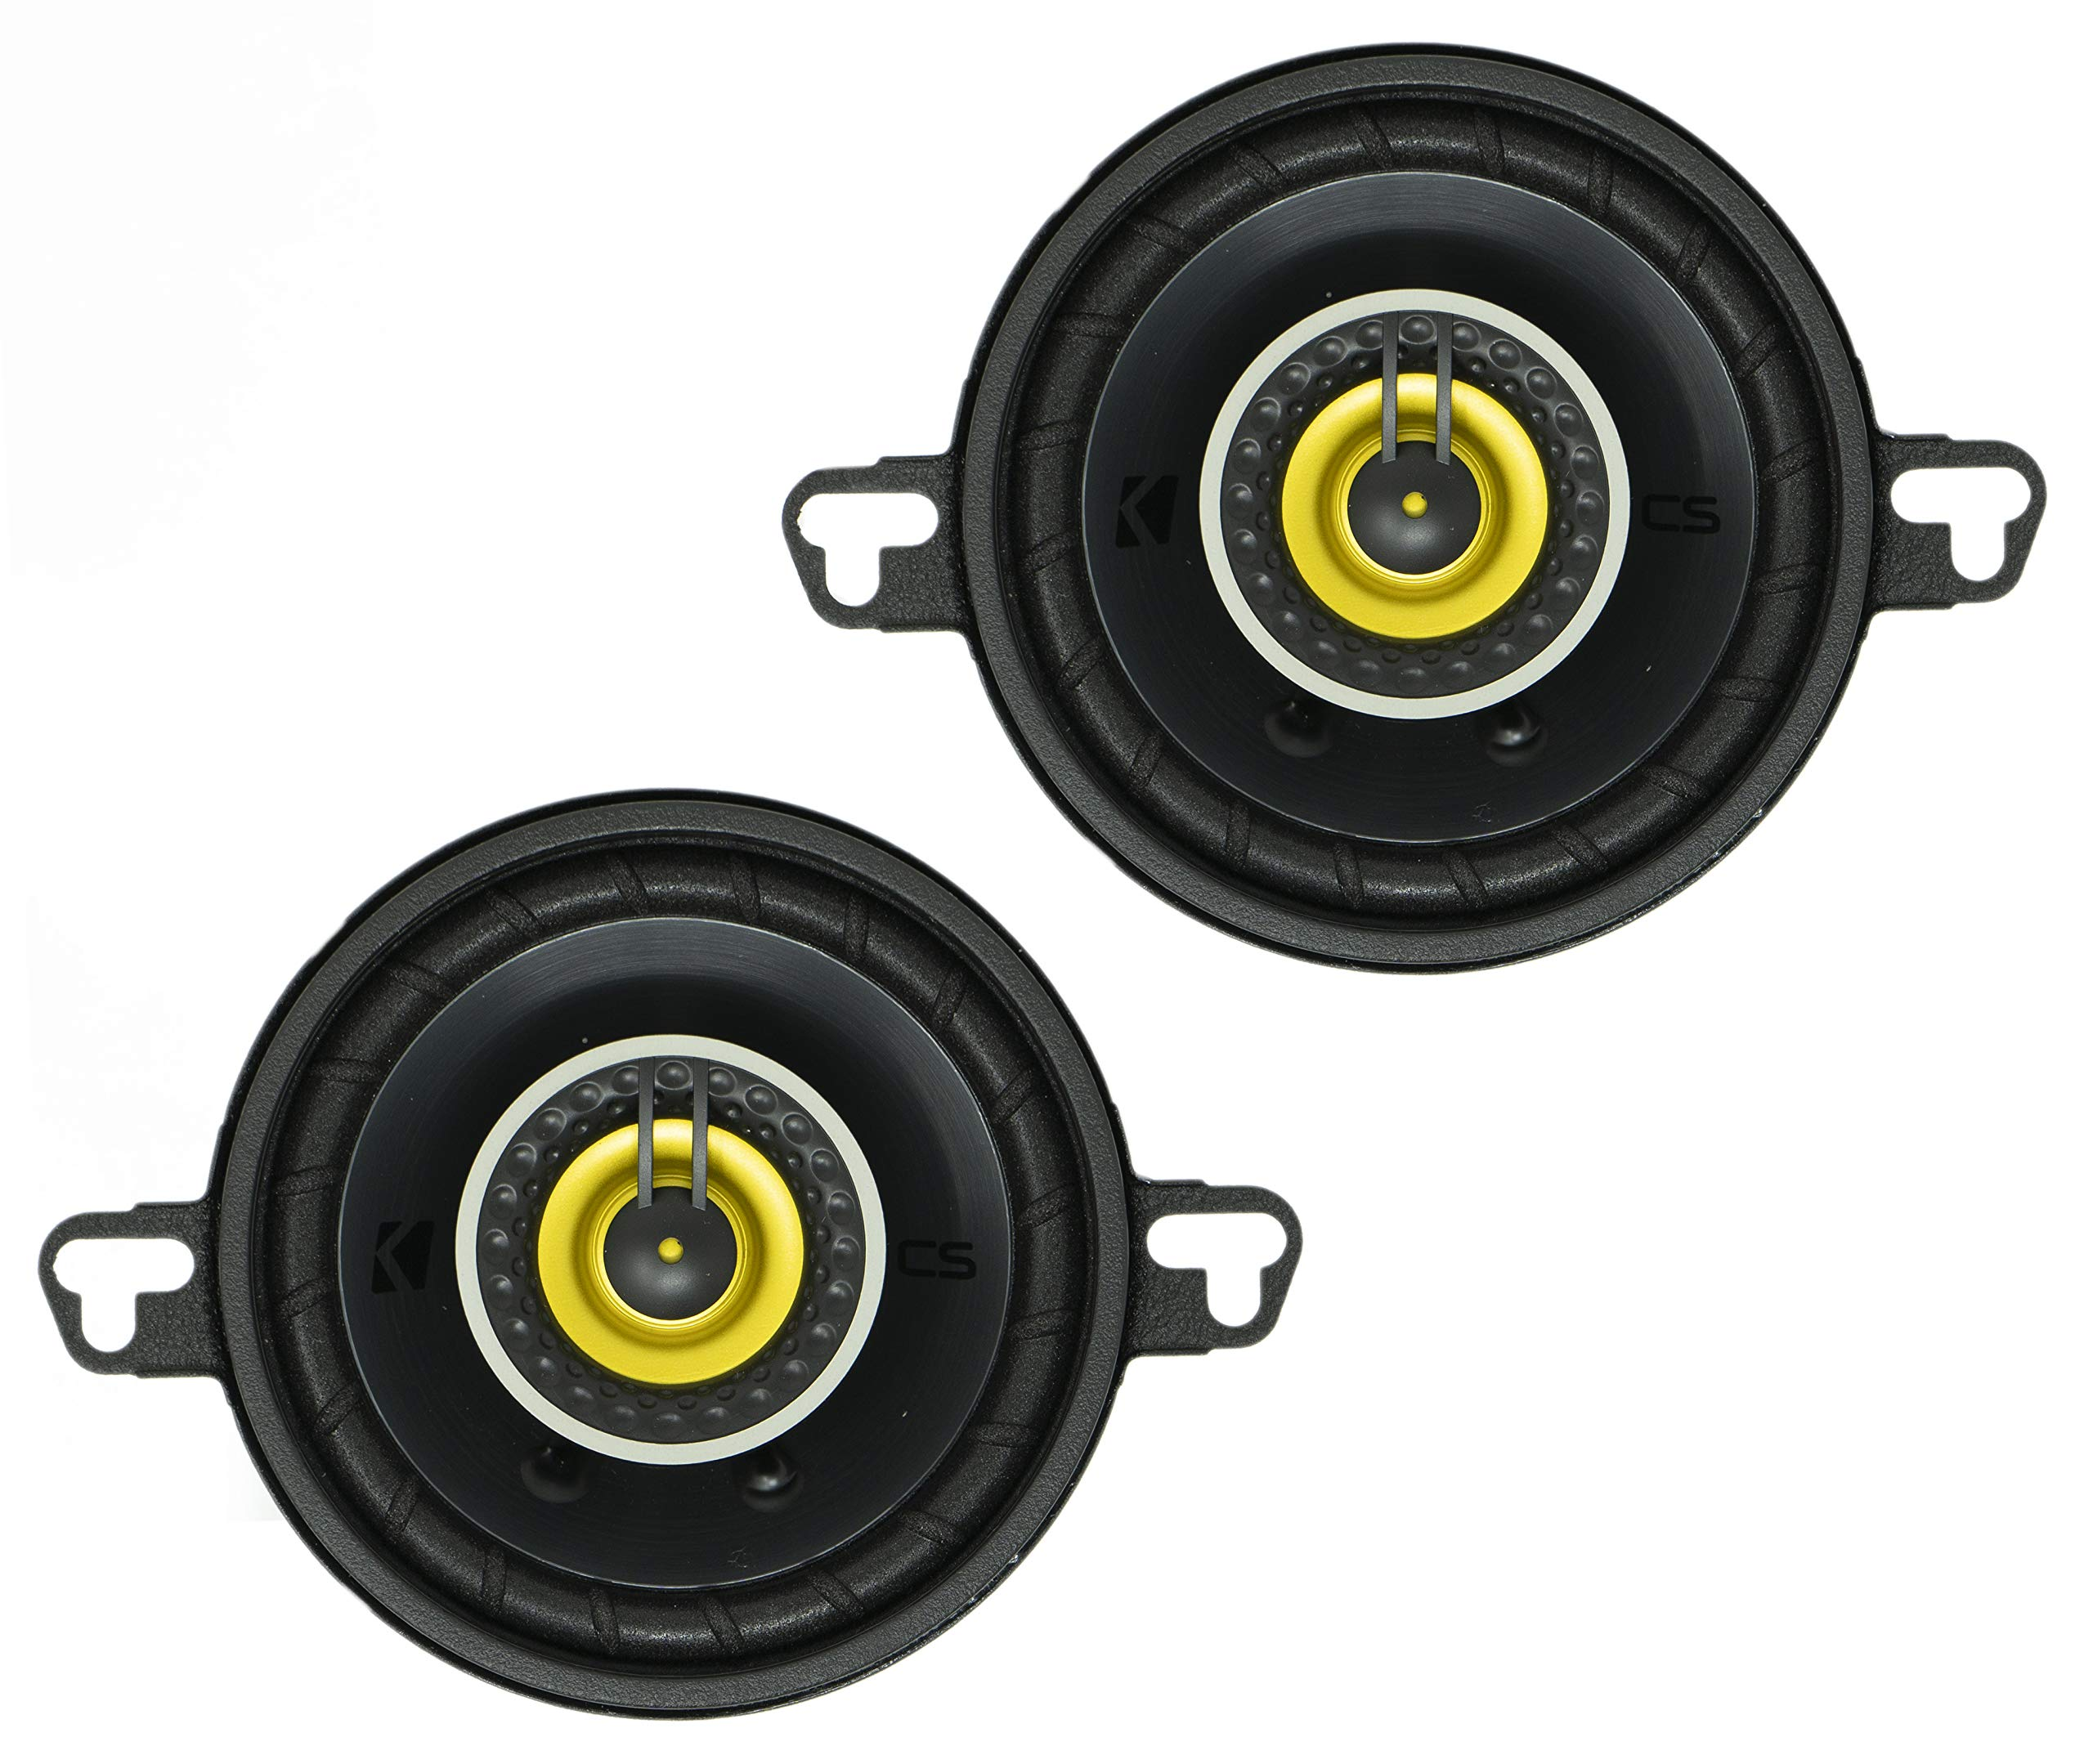 Kicker 46CSC354 Car Audio 3 1/2'' Coaxial Full Range Stereo Speakers Pair CSC35 by KICKER